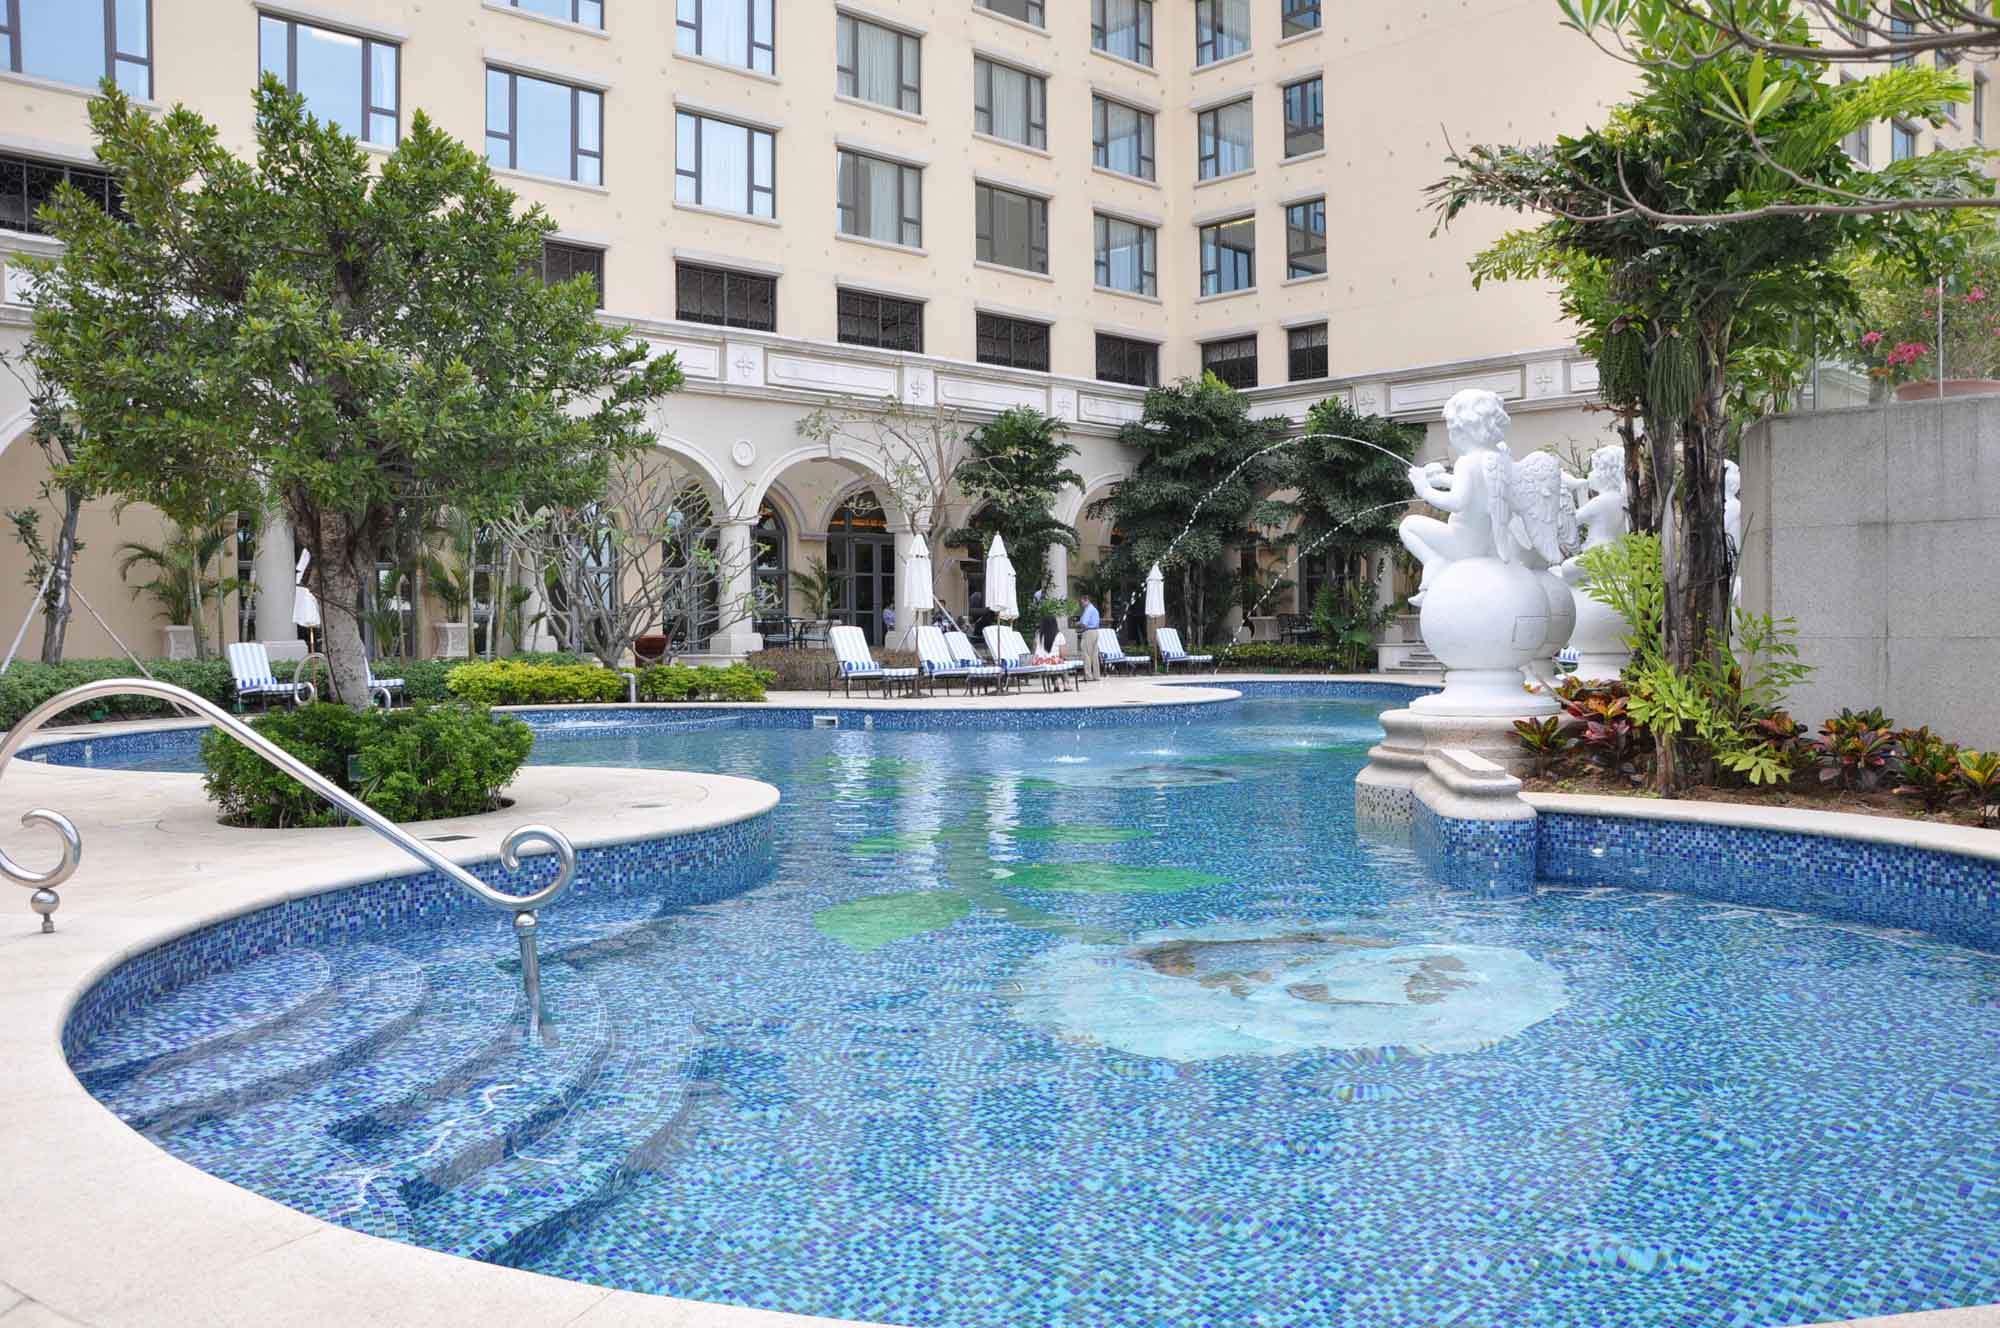 Sofitel Macau outdoor pool